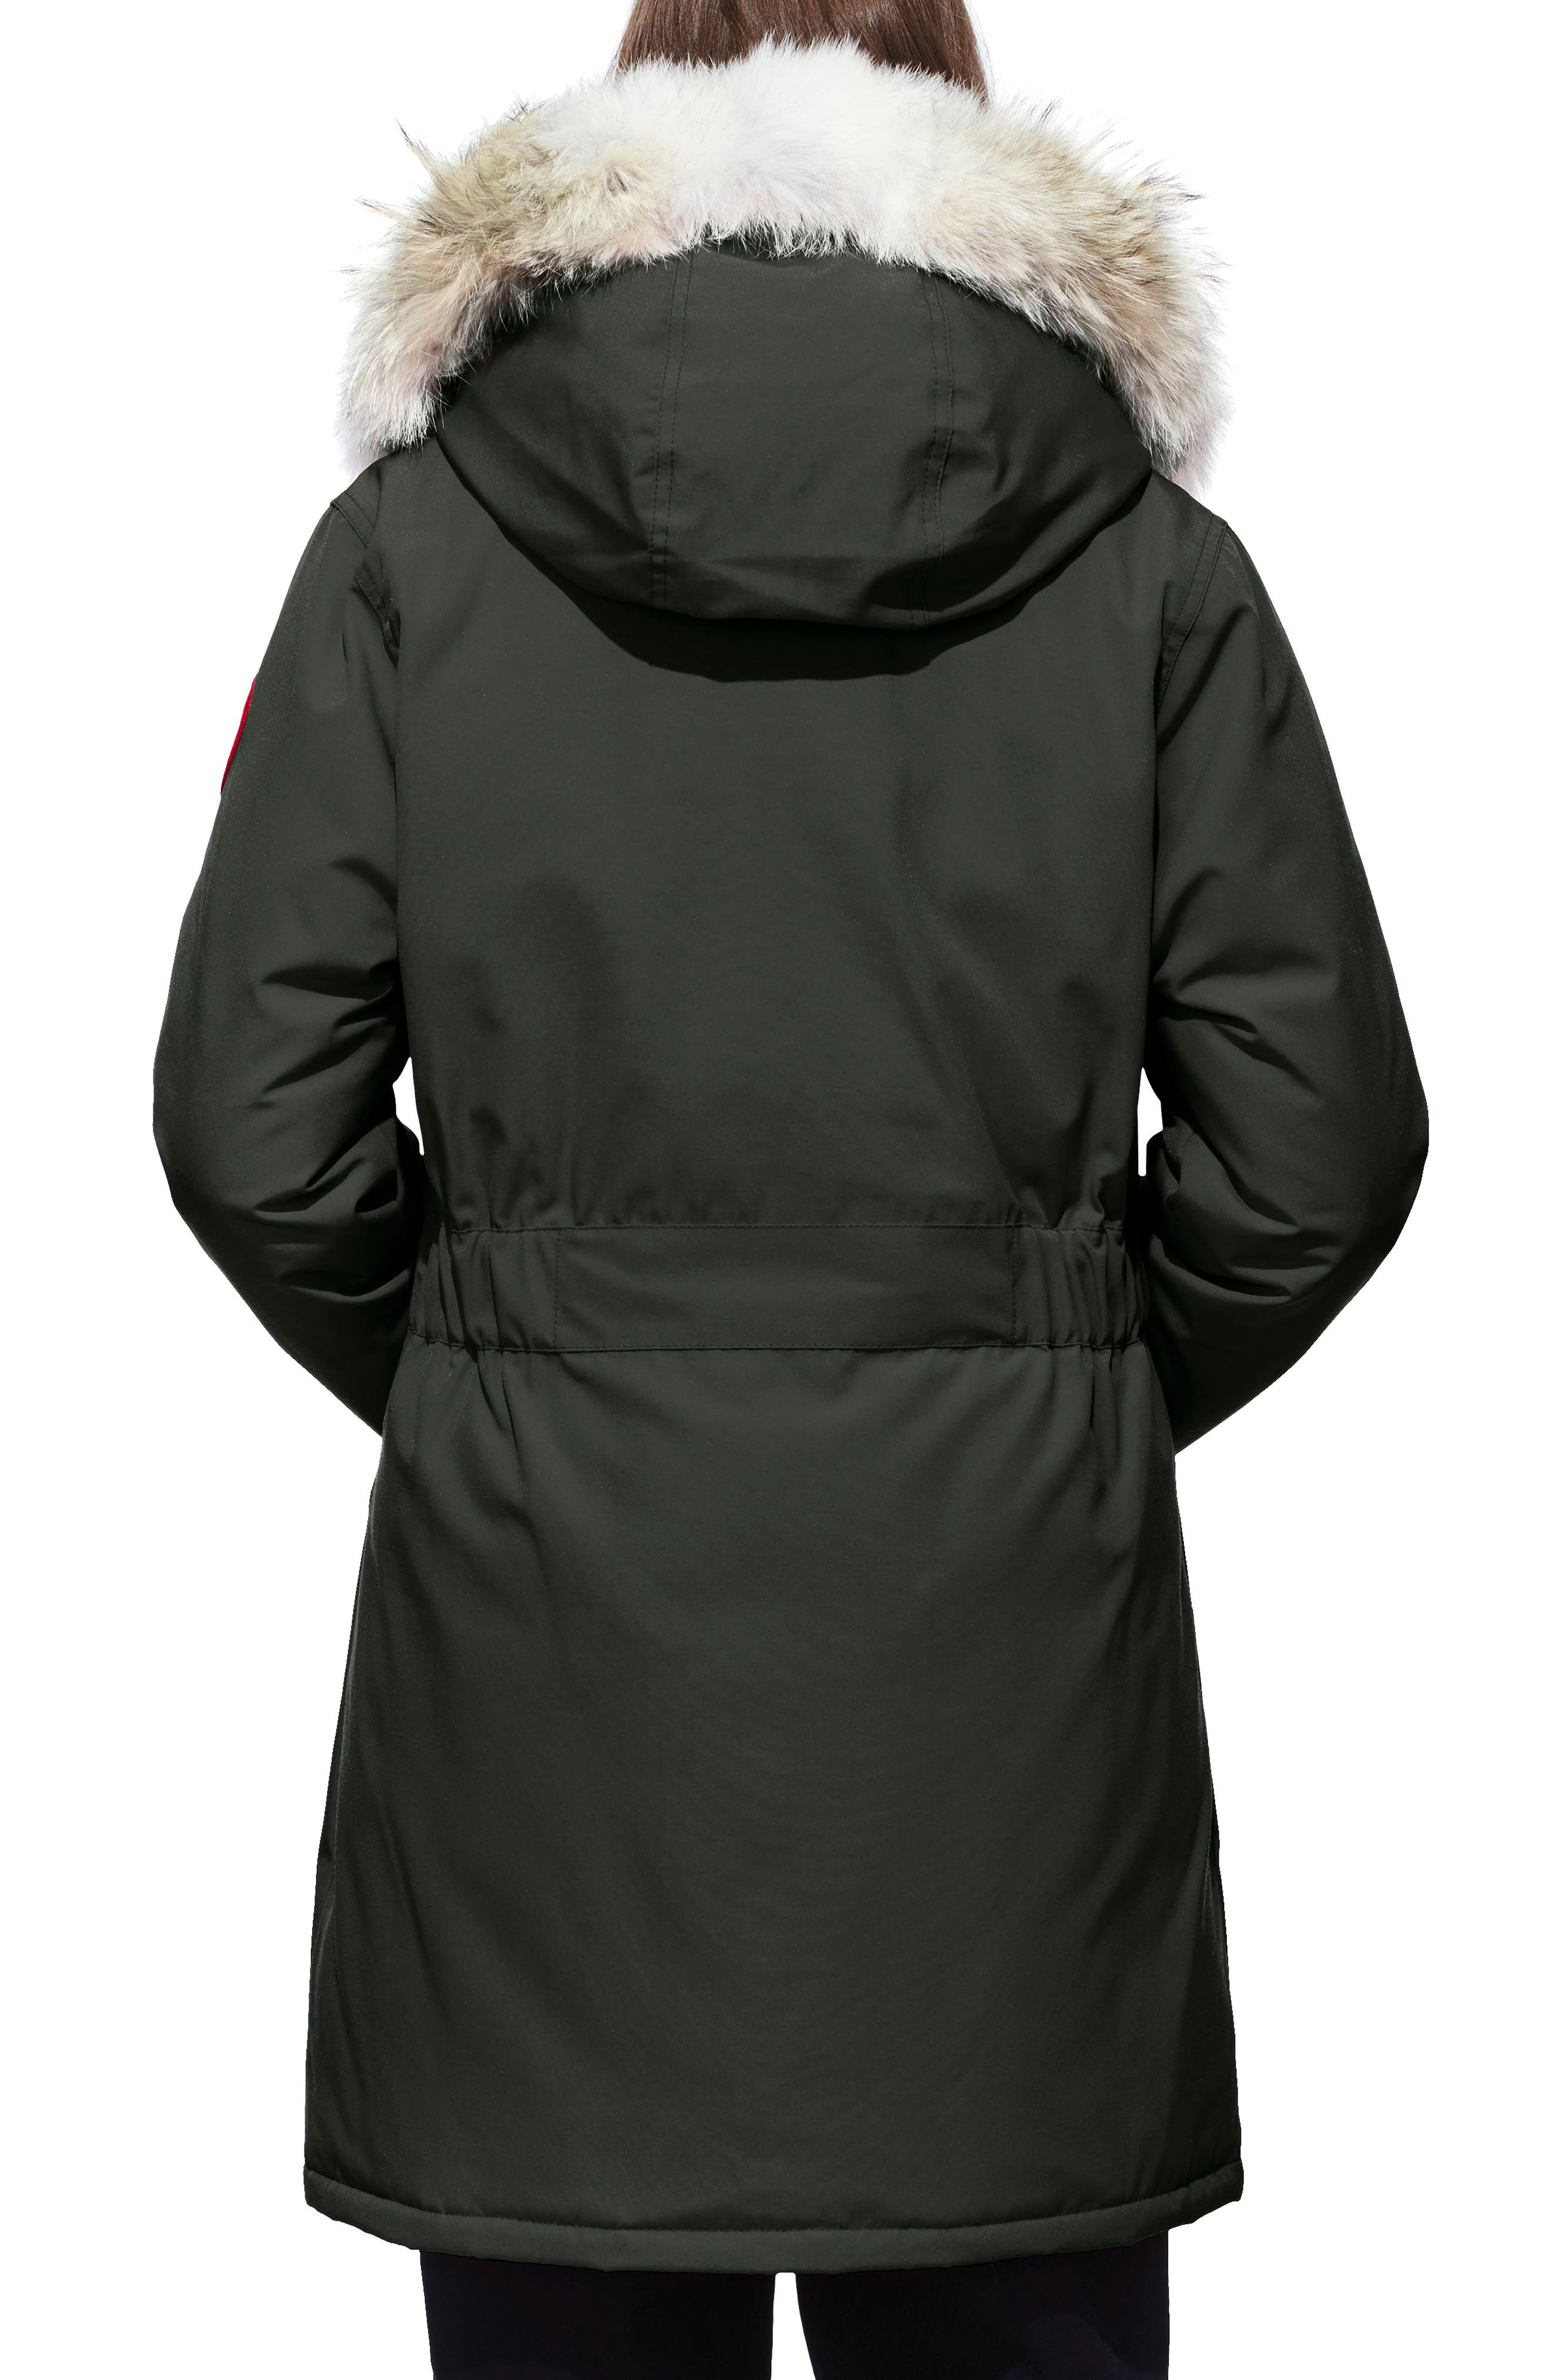 Trillium Fusion Fit Hooded Parka with Genuine Coyote Fur Trim,                             Alternate thumbnail 2, color,                             300